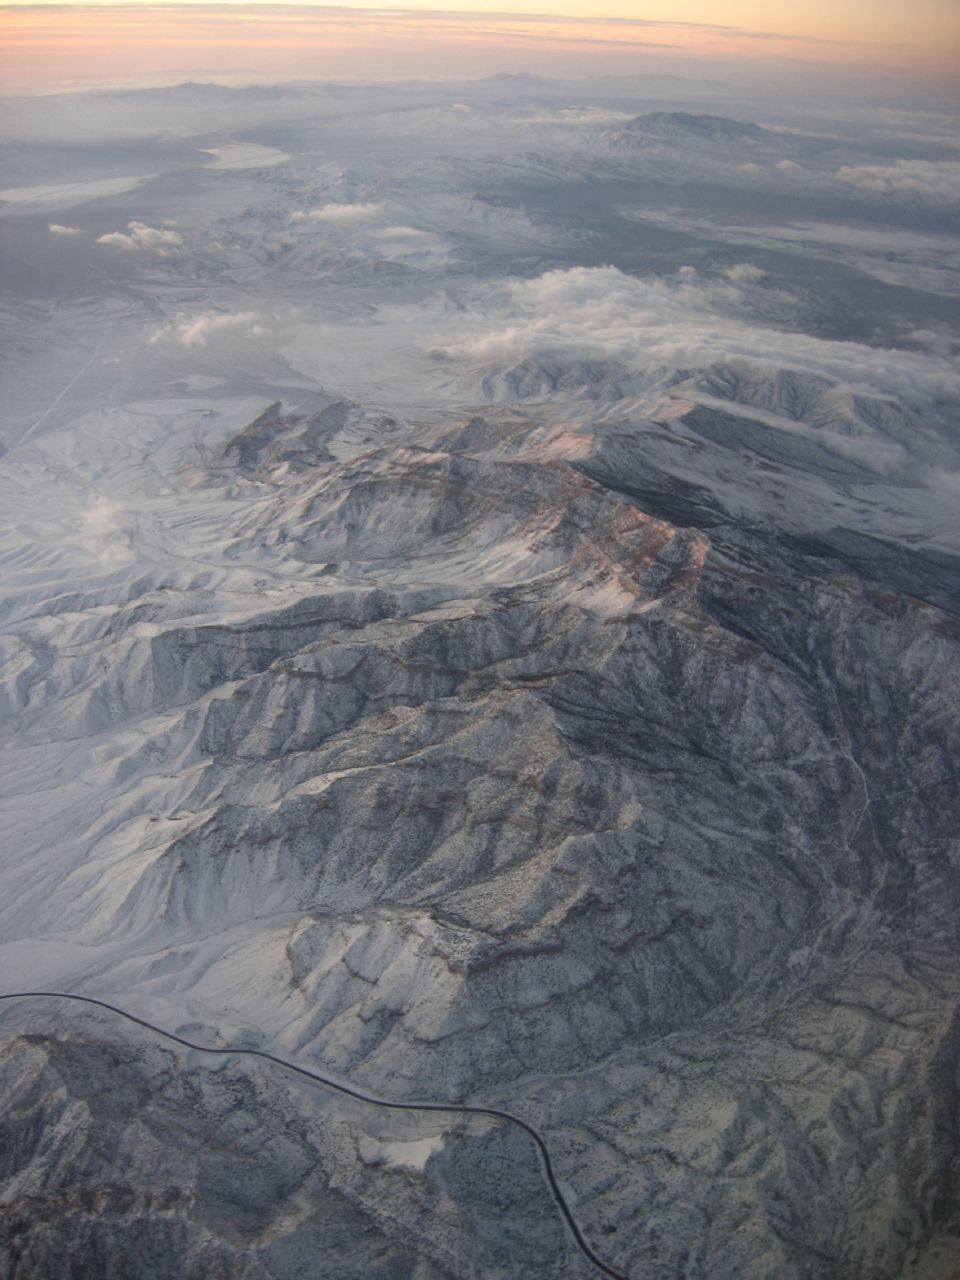 Pahrump To Las Vegas >> File:Mount Potosi, State Route 160 Between Las Vegas and Pahrump, Nevada (3124835775).jpg ...